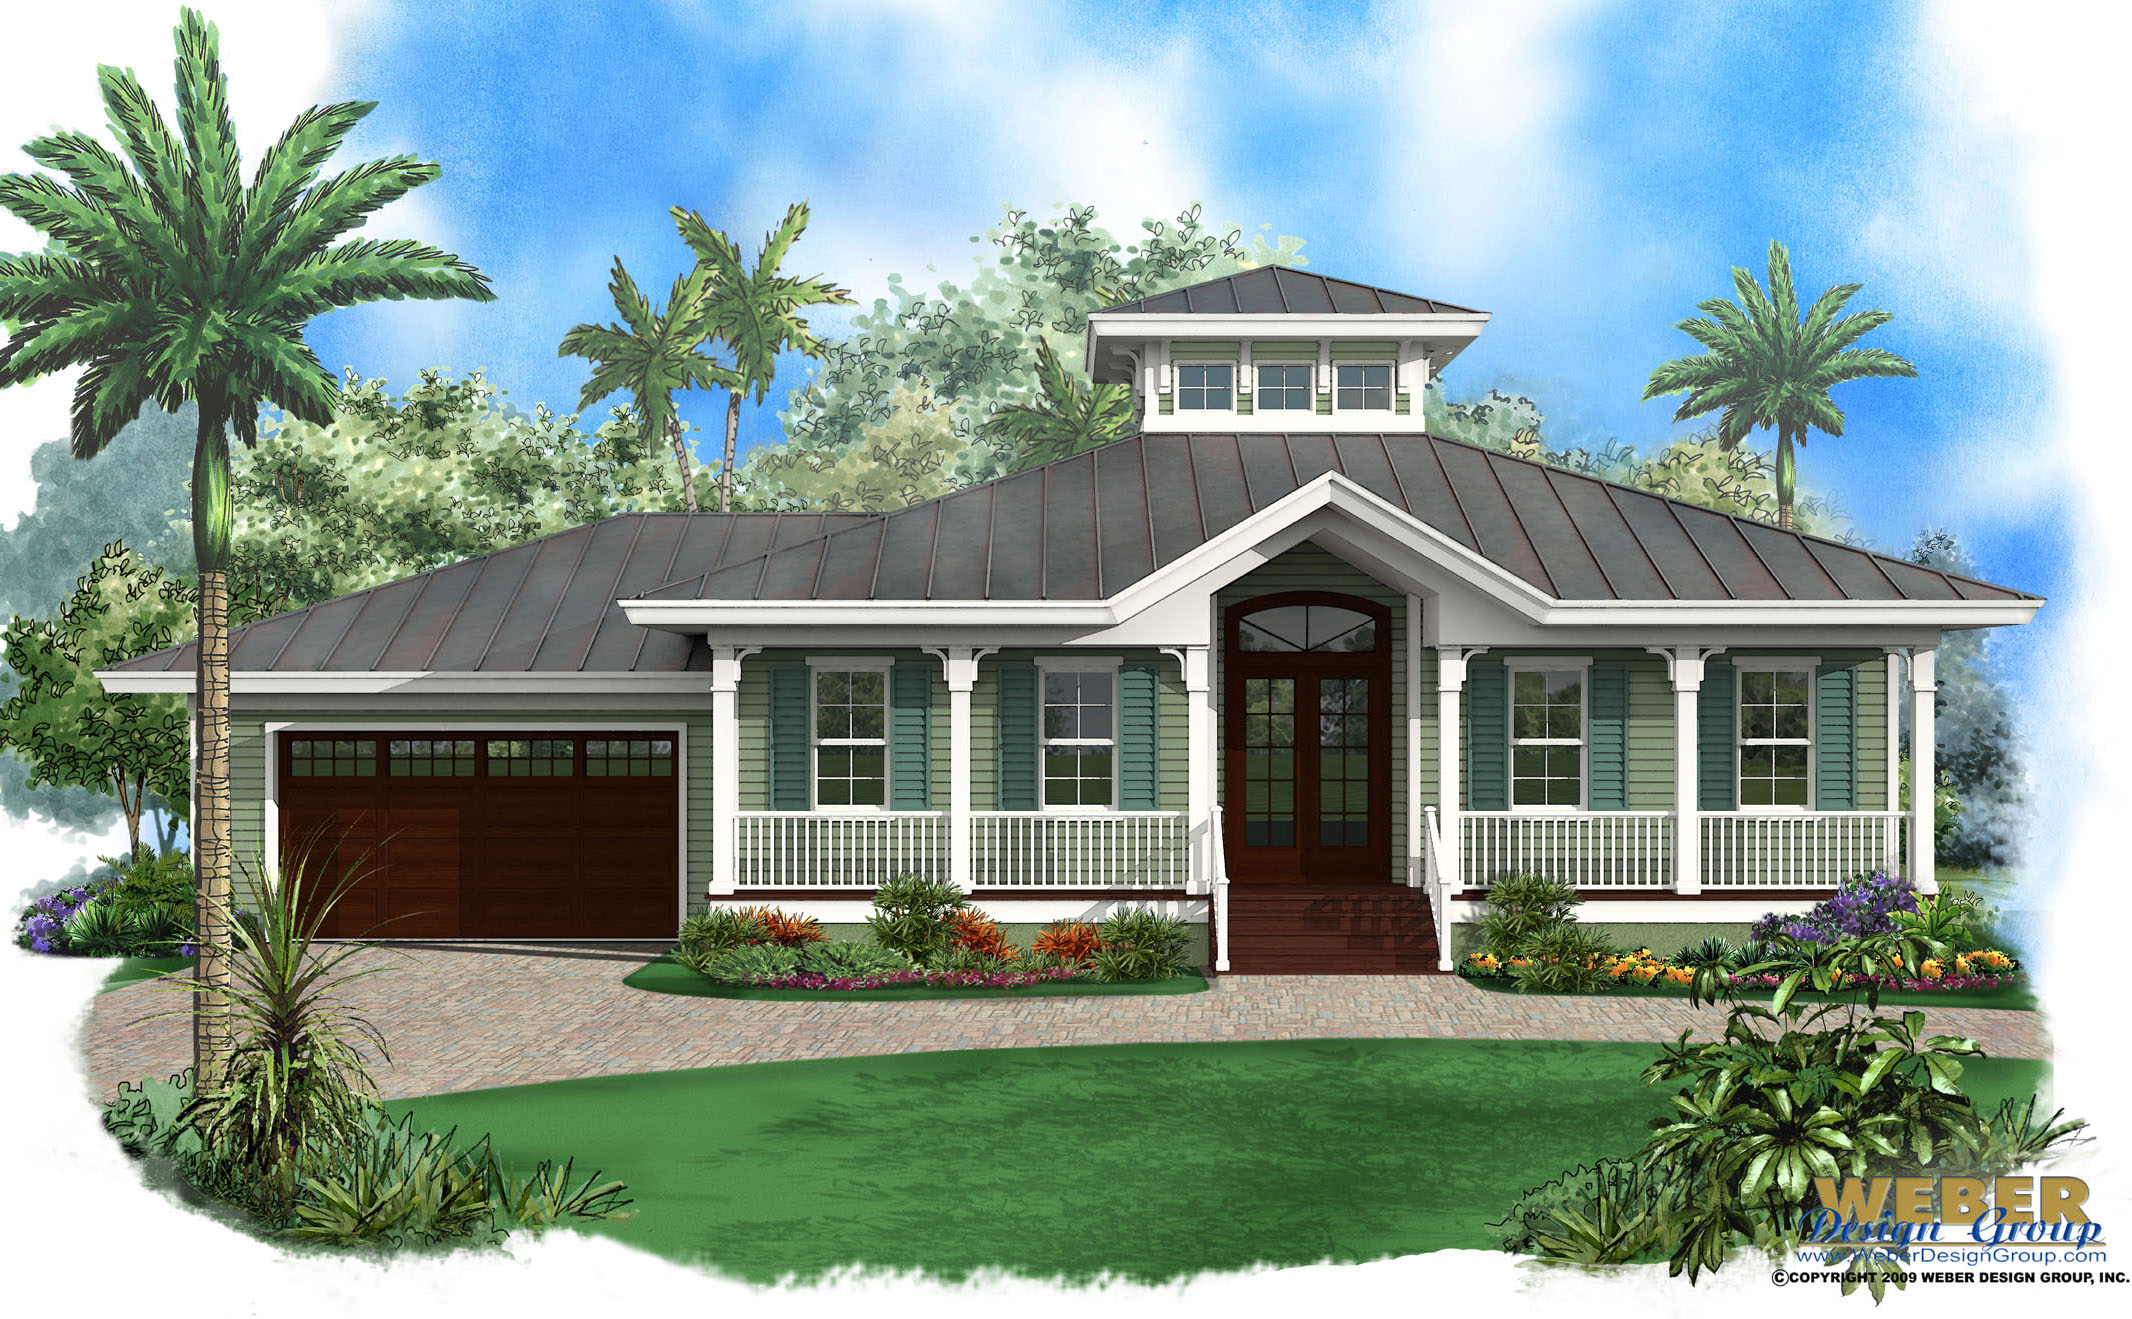 caribbean homes designs. View Details Caribbean House Plans  Stock Tropical Island Style Home Floor